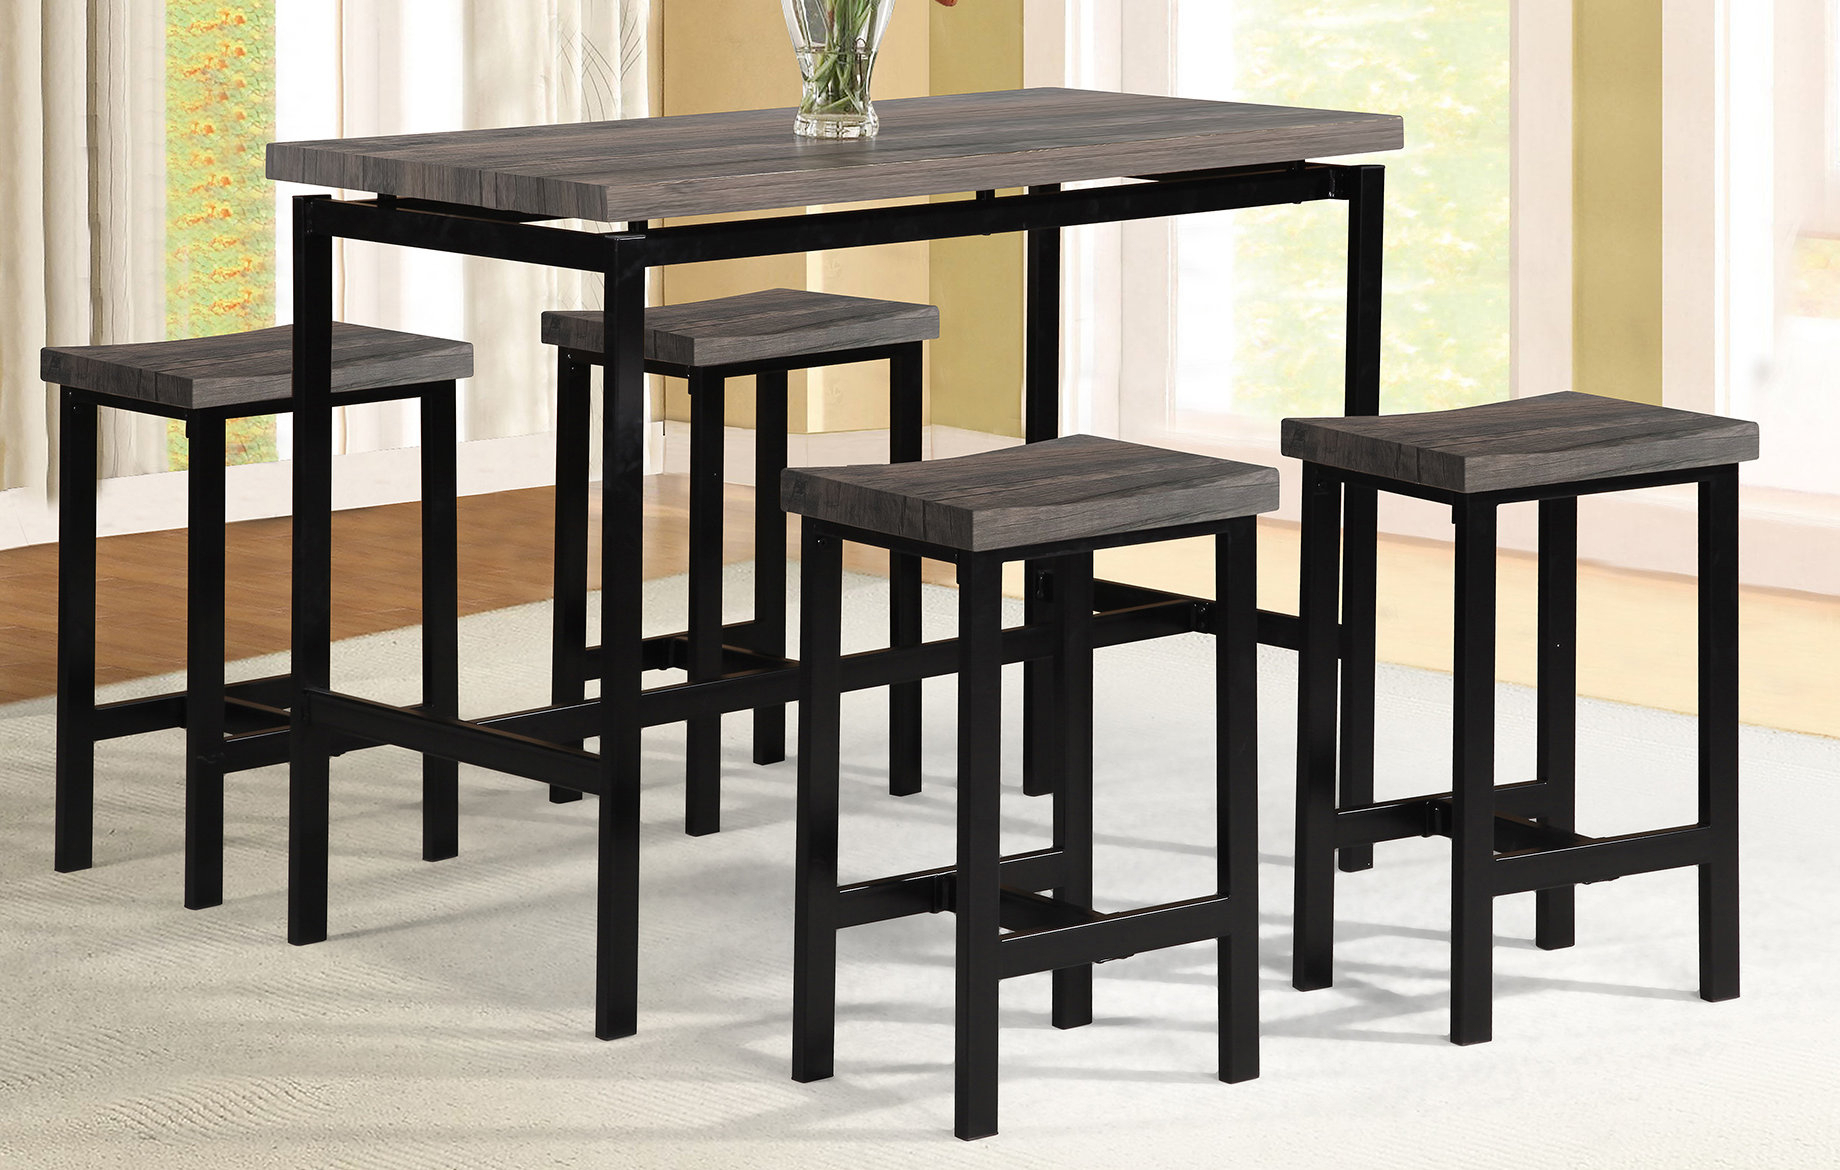 Details About Wrought Studio Denzel 5 Piece Counter Height Breakfast Nook Dining Set Intended For Well Liked Denzel 5 Piece Counter Height Breakfast Nook Dining Sets (View 3 of 20)